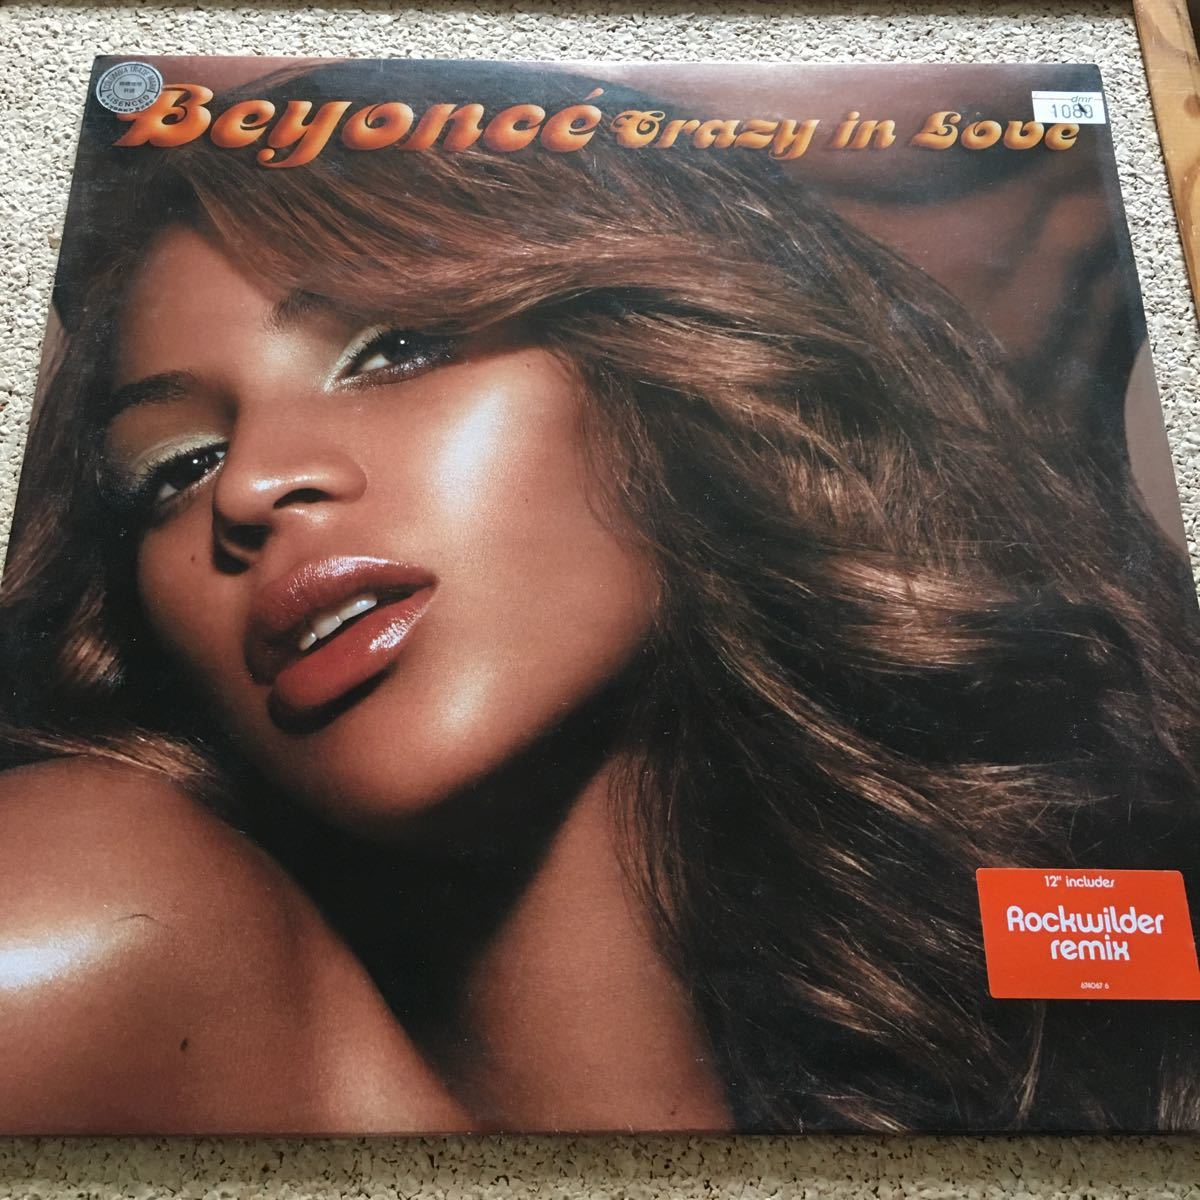 Beyonce / Crazy In Love remix / Album Ver. F. Jay-Z / Chi-Lites - Are You My Woman / 12 レコード_画像1